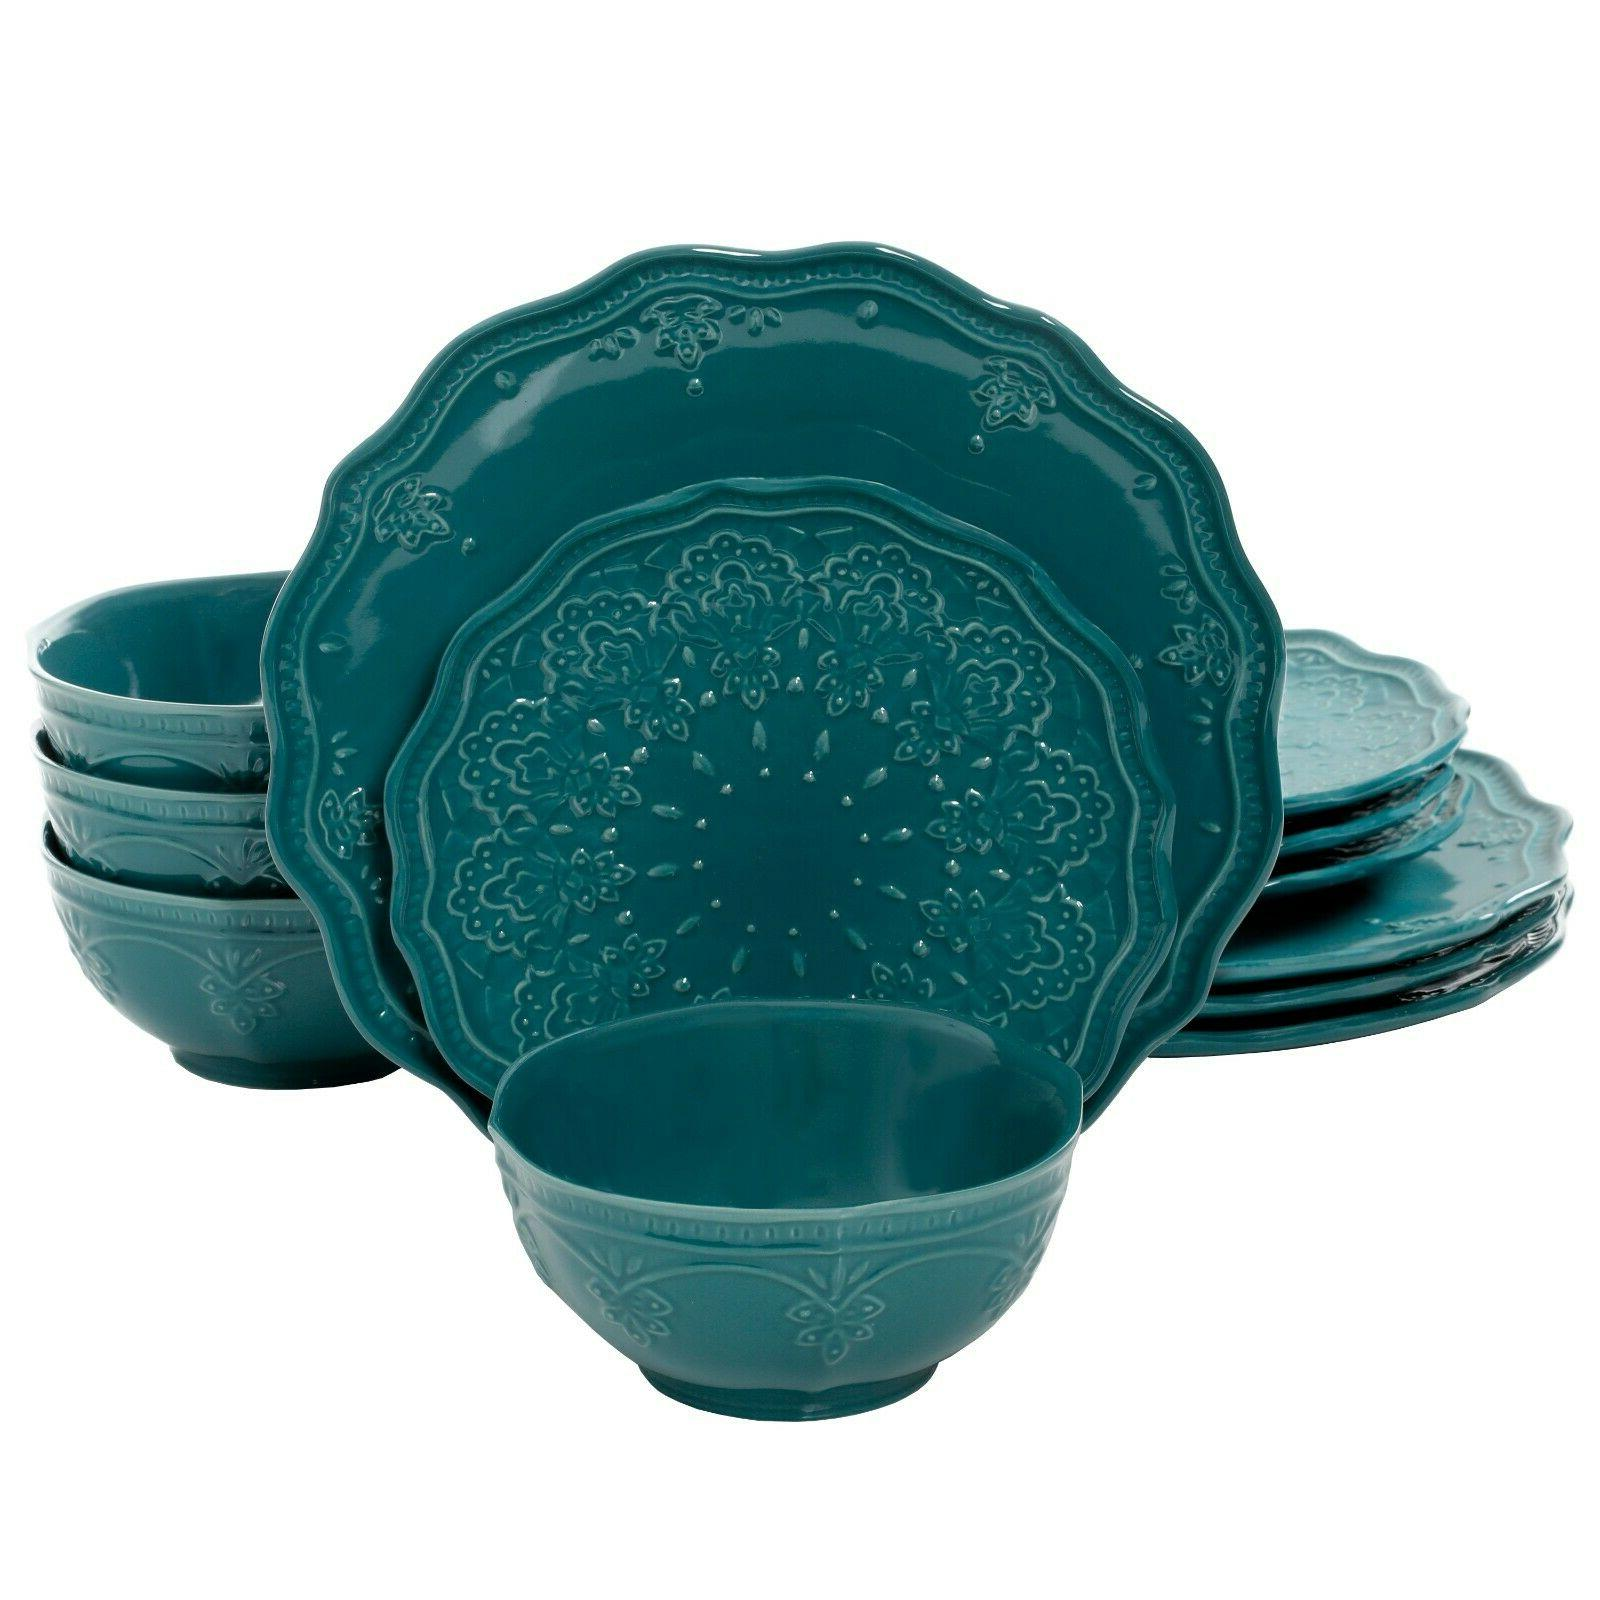 The Pioneer Woman Lace 12-Piece Teal